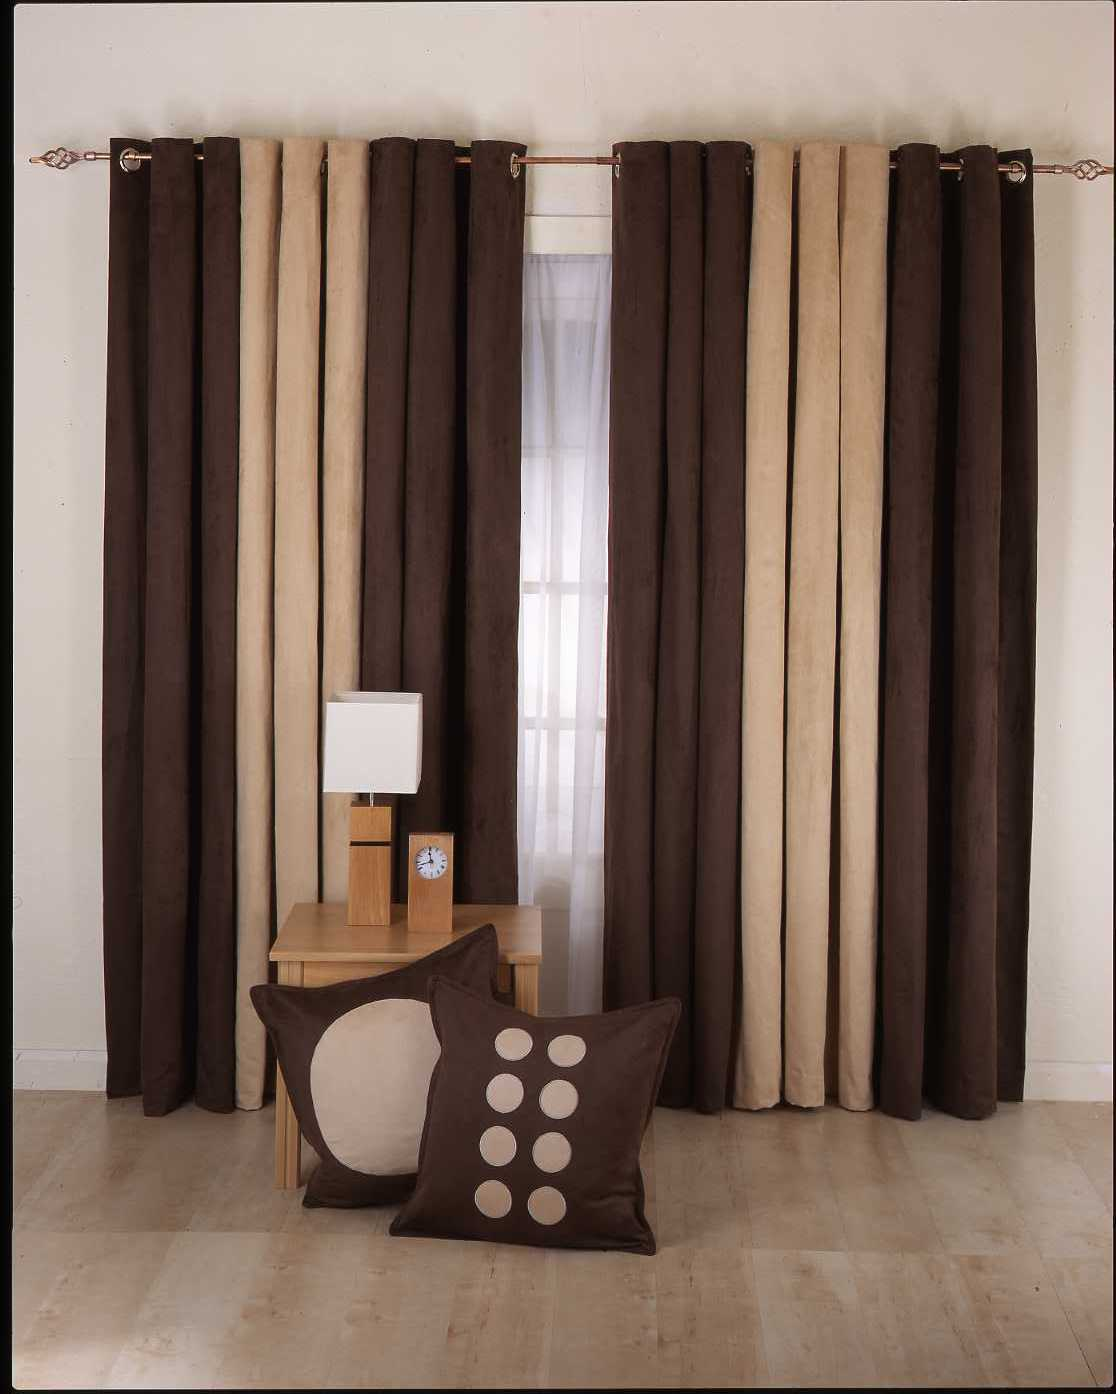 Home Design Ideas Curtains 28 Images Home Curtain Simple: Modern House: Ideas For Simple Curtains 2011